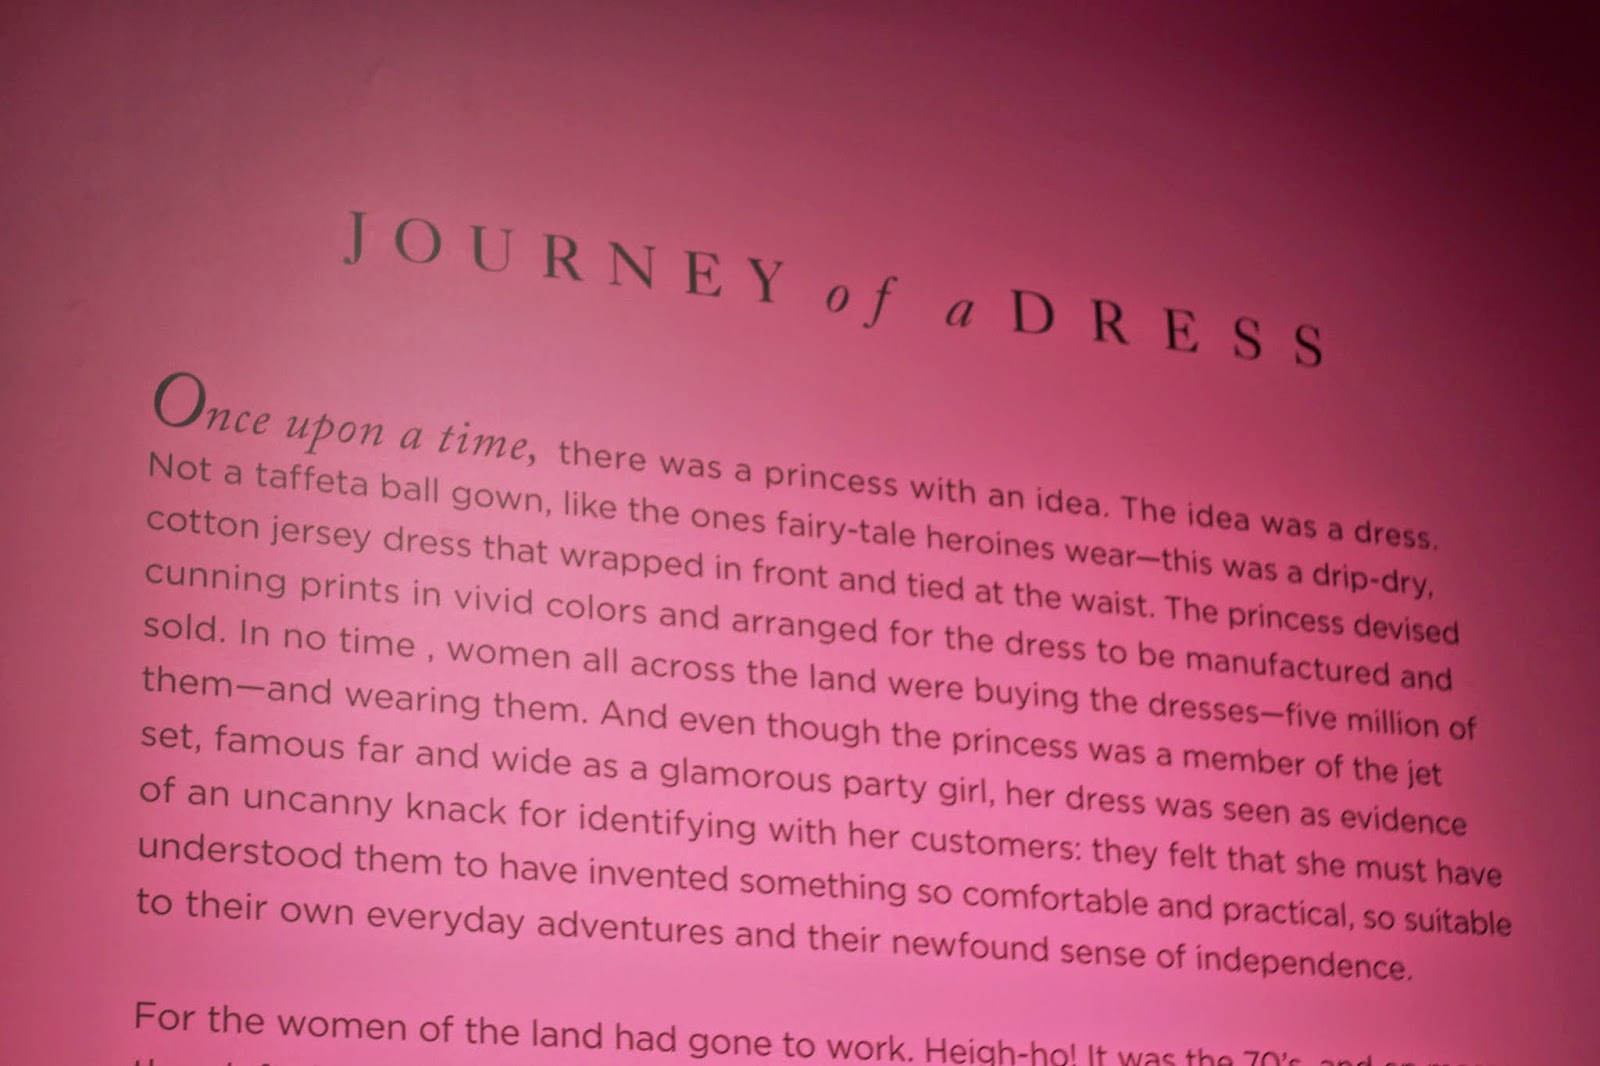 picture of journey of a dress story, dvf picture of journey of a dress story